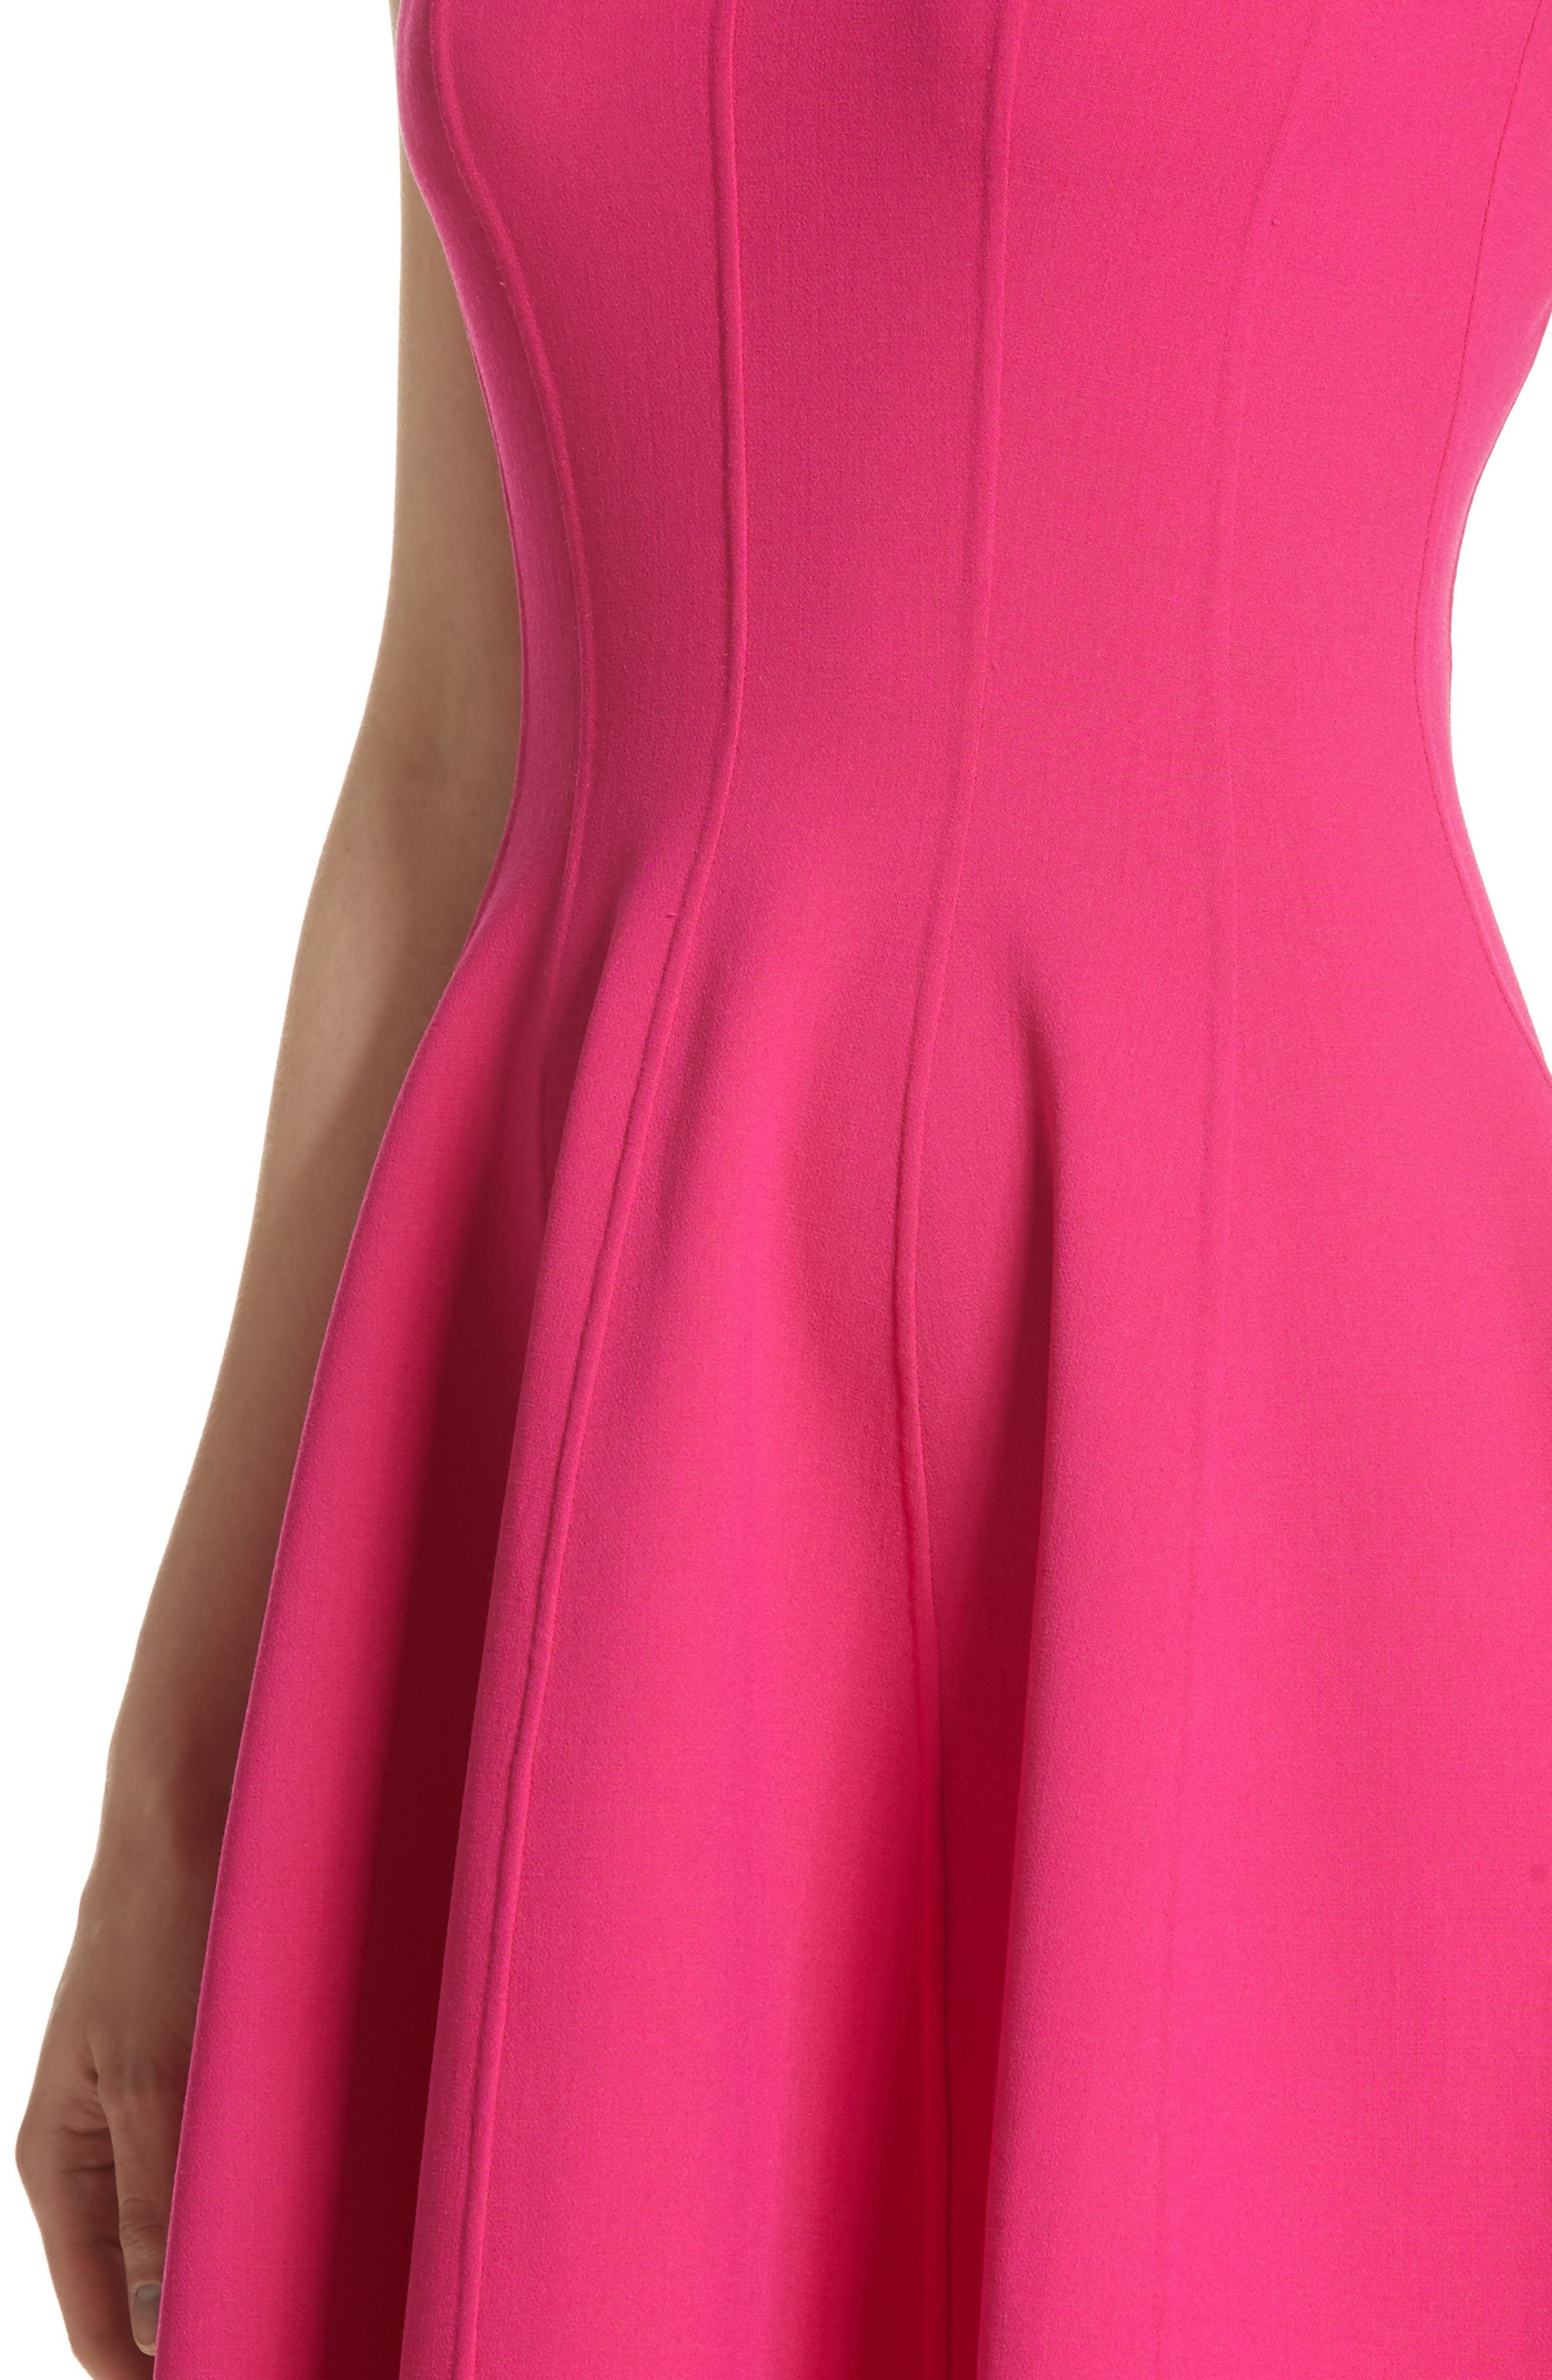 Stretch Wool Bell Dress,                             Alternate thumbnail 4, color,                             657